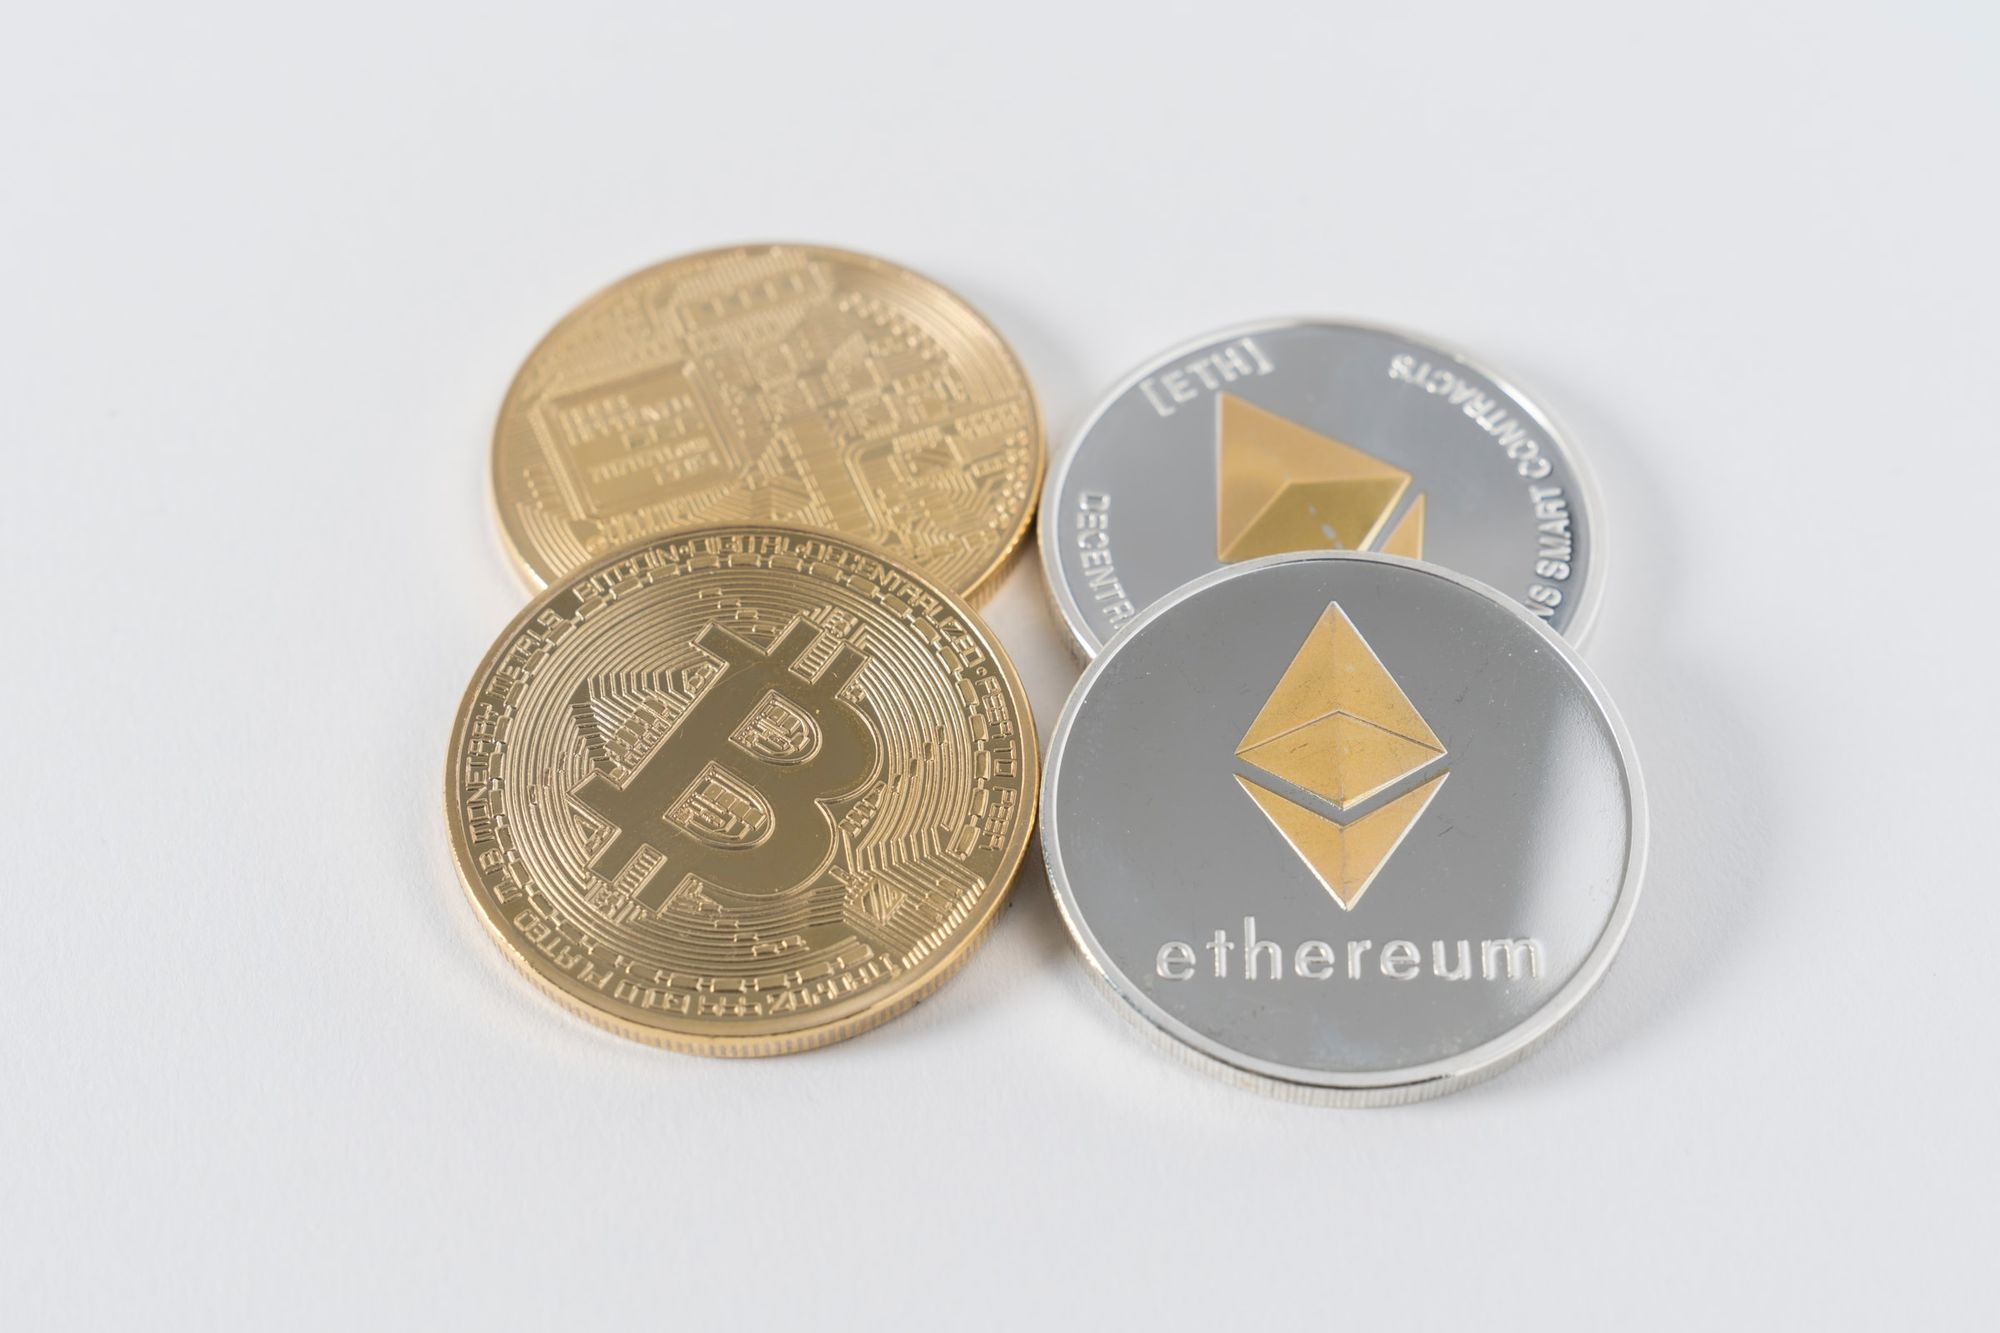 Purpose Investments Launches Mutual Fund Units of Purpose Bitcoin ETF and Purpose Ether ETF